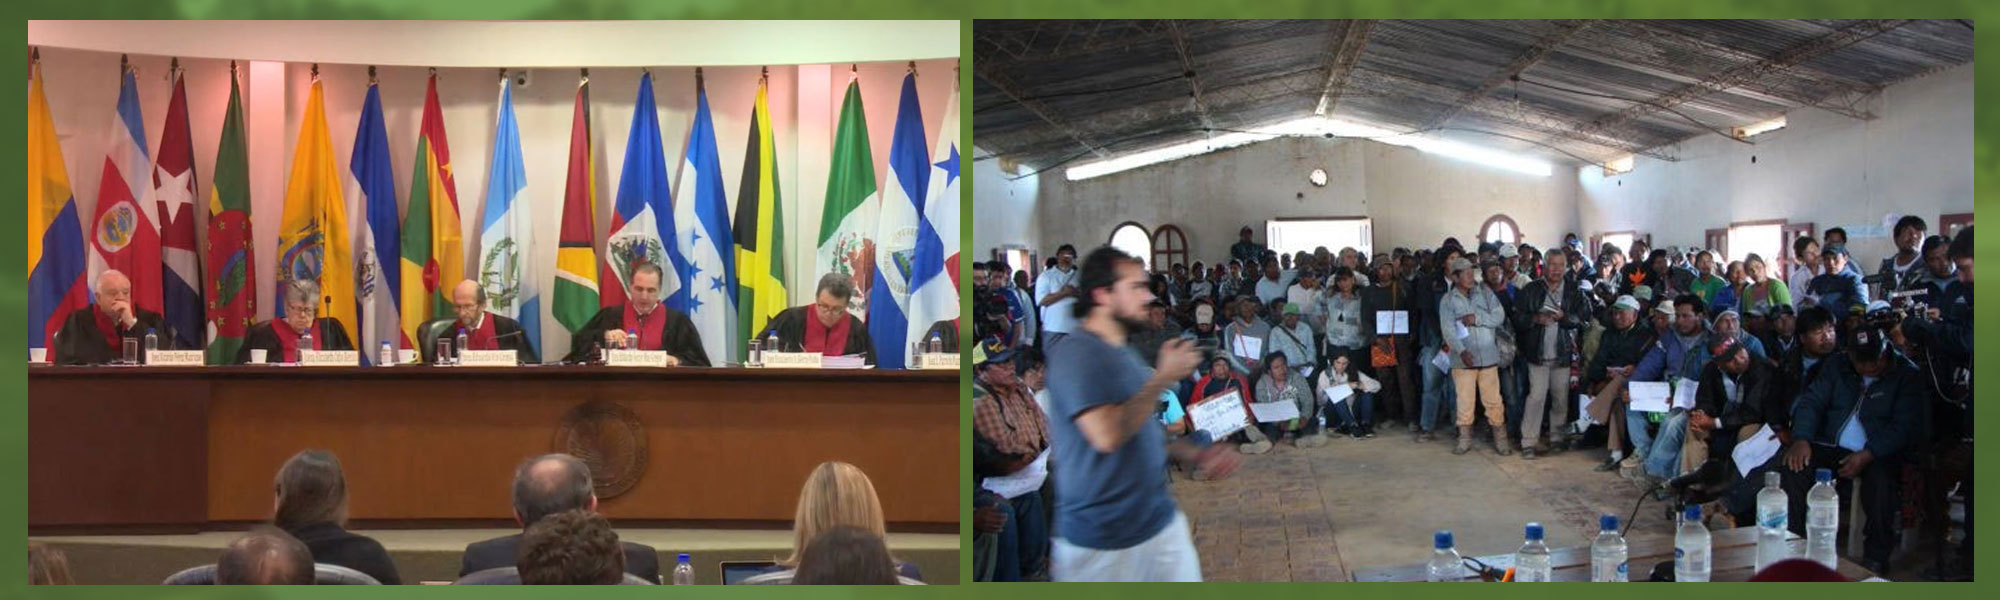 The protection of lands and territories of indigenous peoples through human rights: the controversy raised in the case of Lhaka Honhat (nuestra tierra) v. Argentina